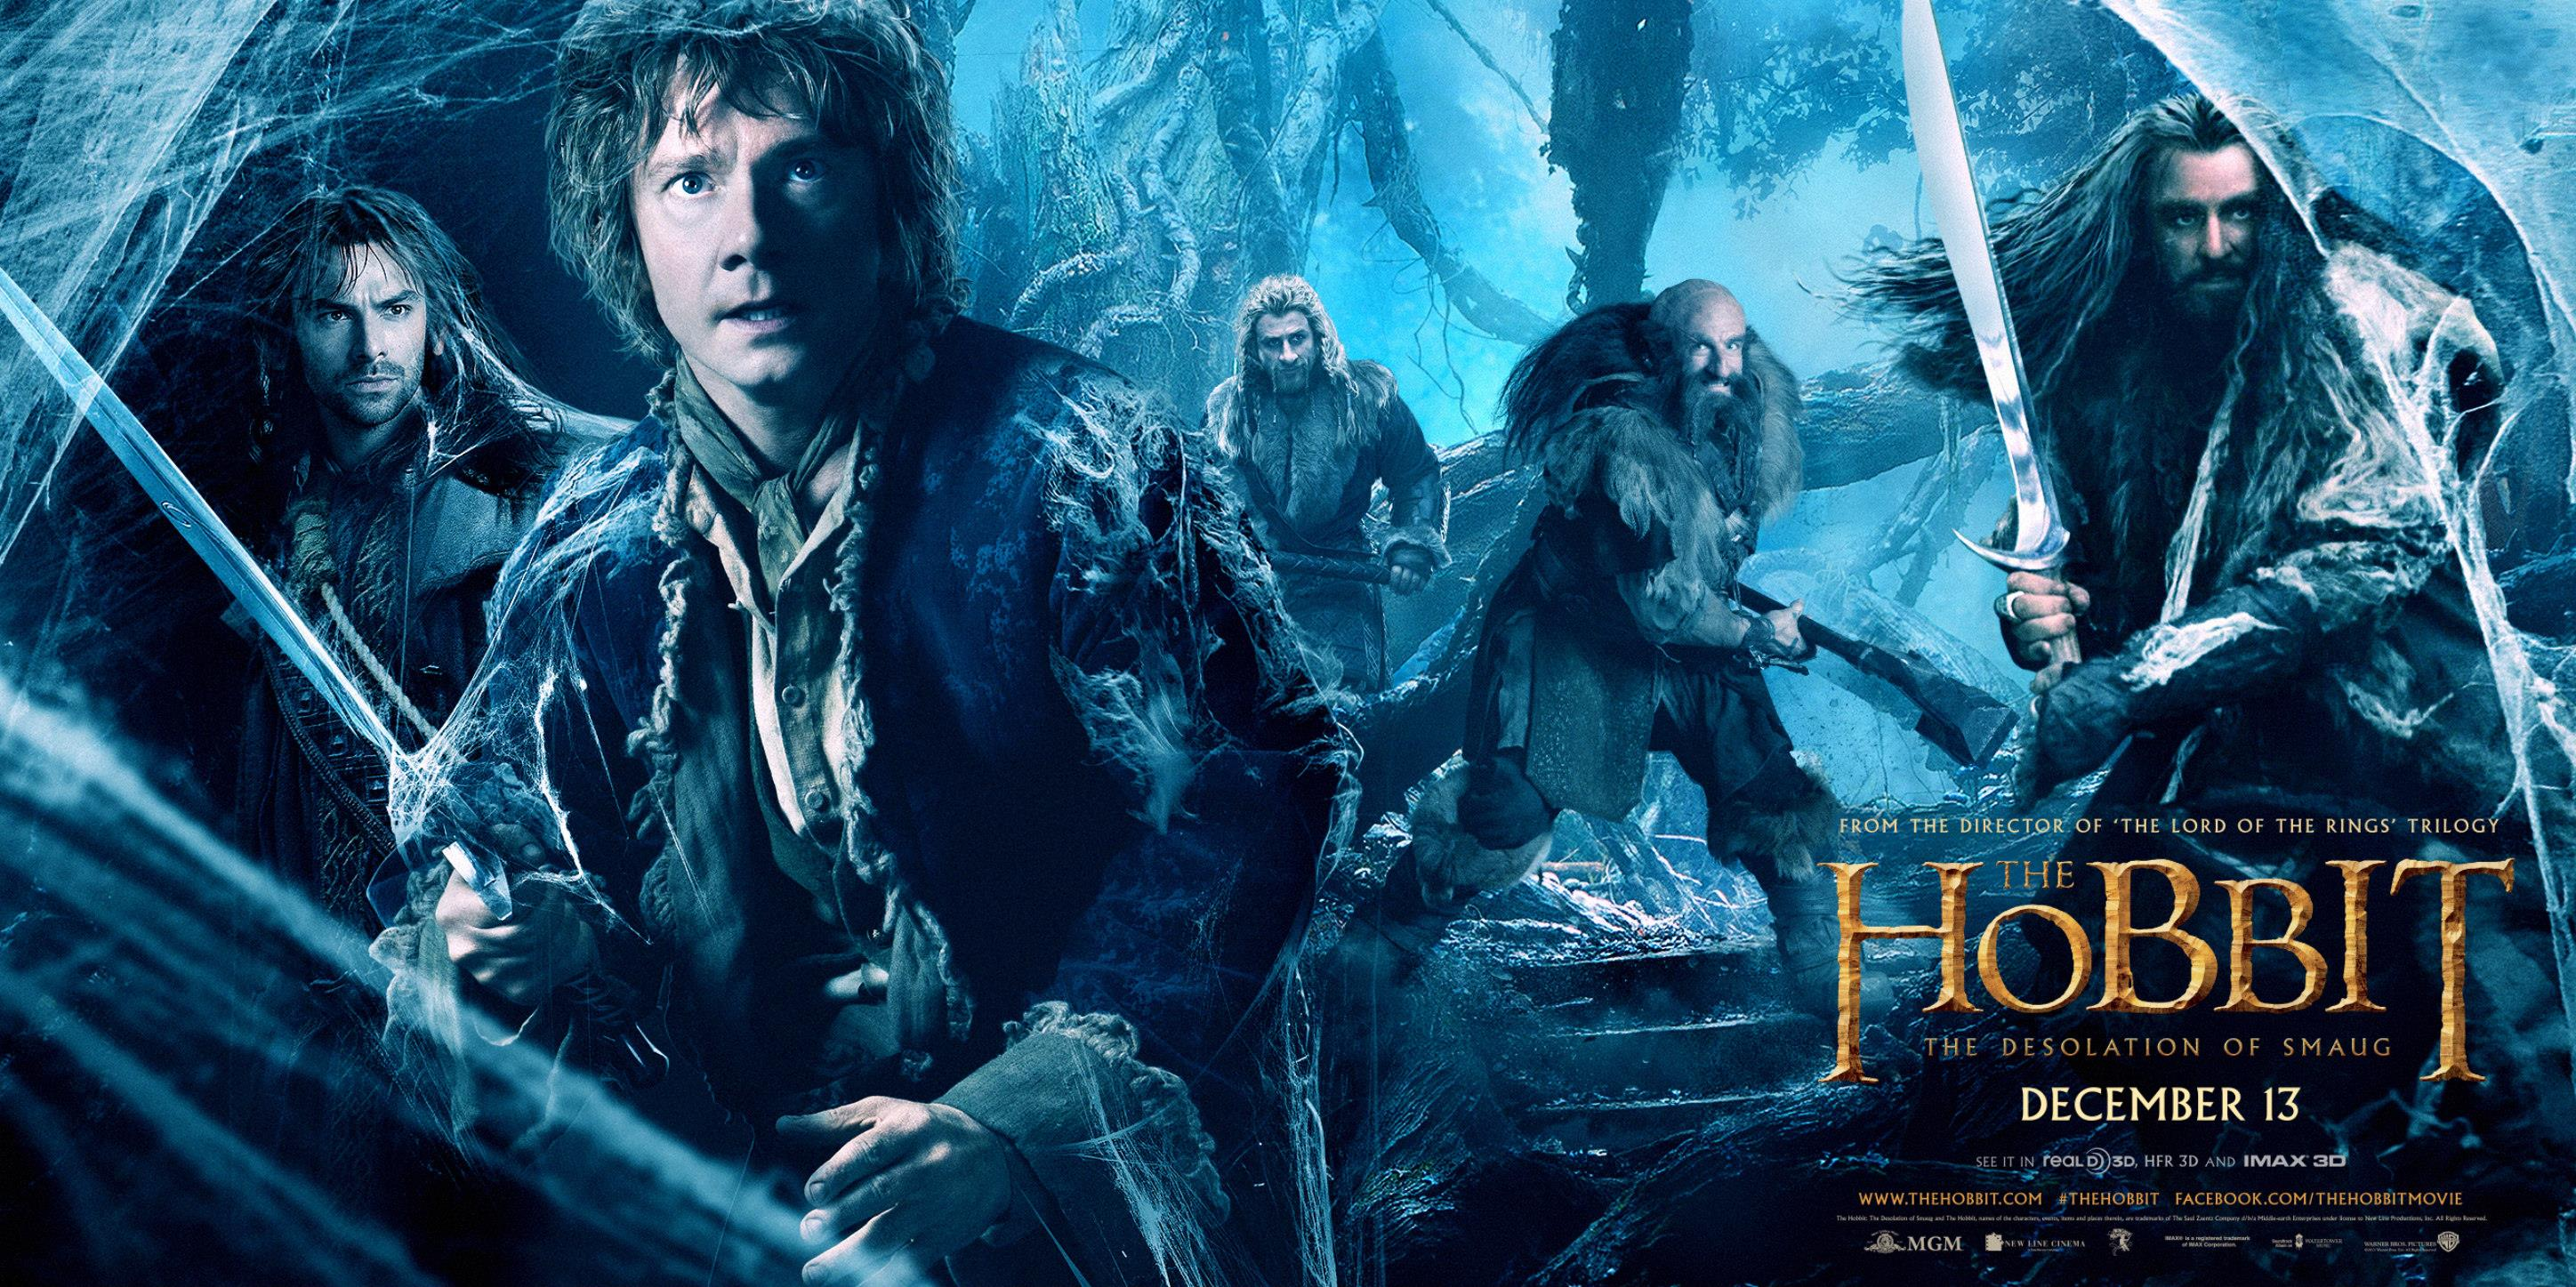 THE HOBBIT THE DESOLATION OF SMAUG-Official Poster Banner PROMO BANNER-30SETEMBRO2013